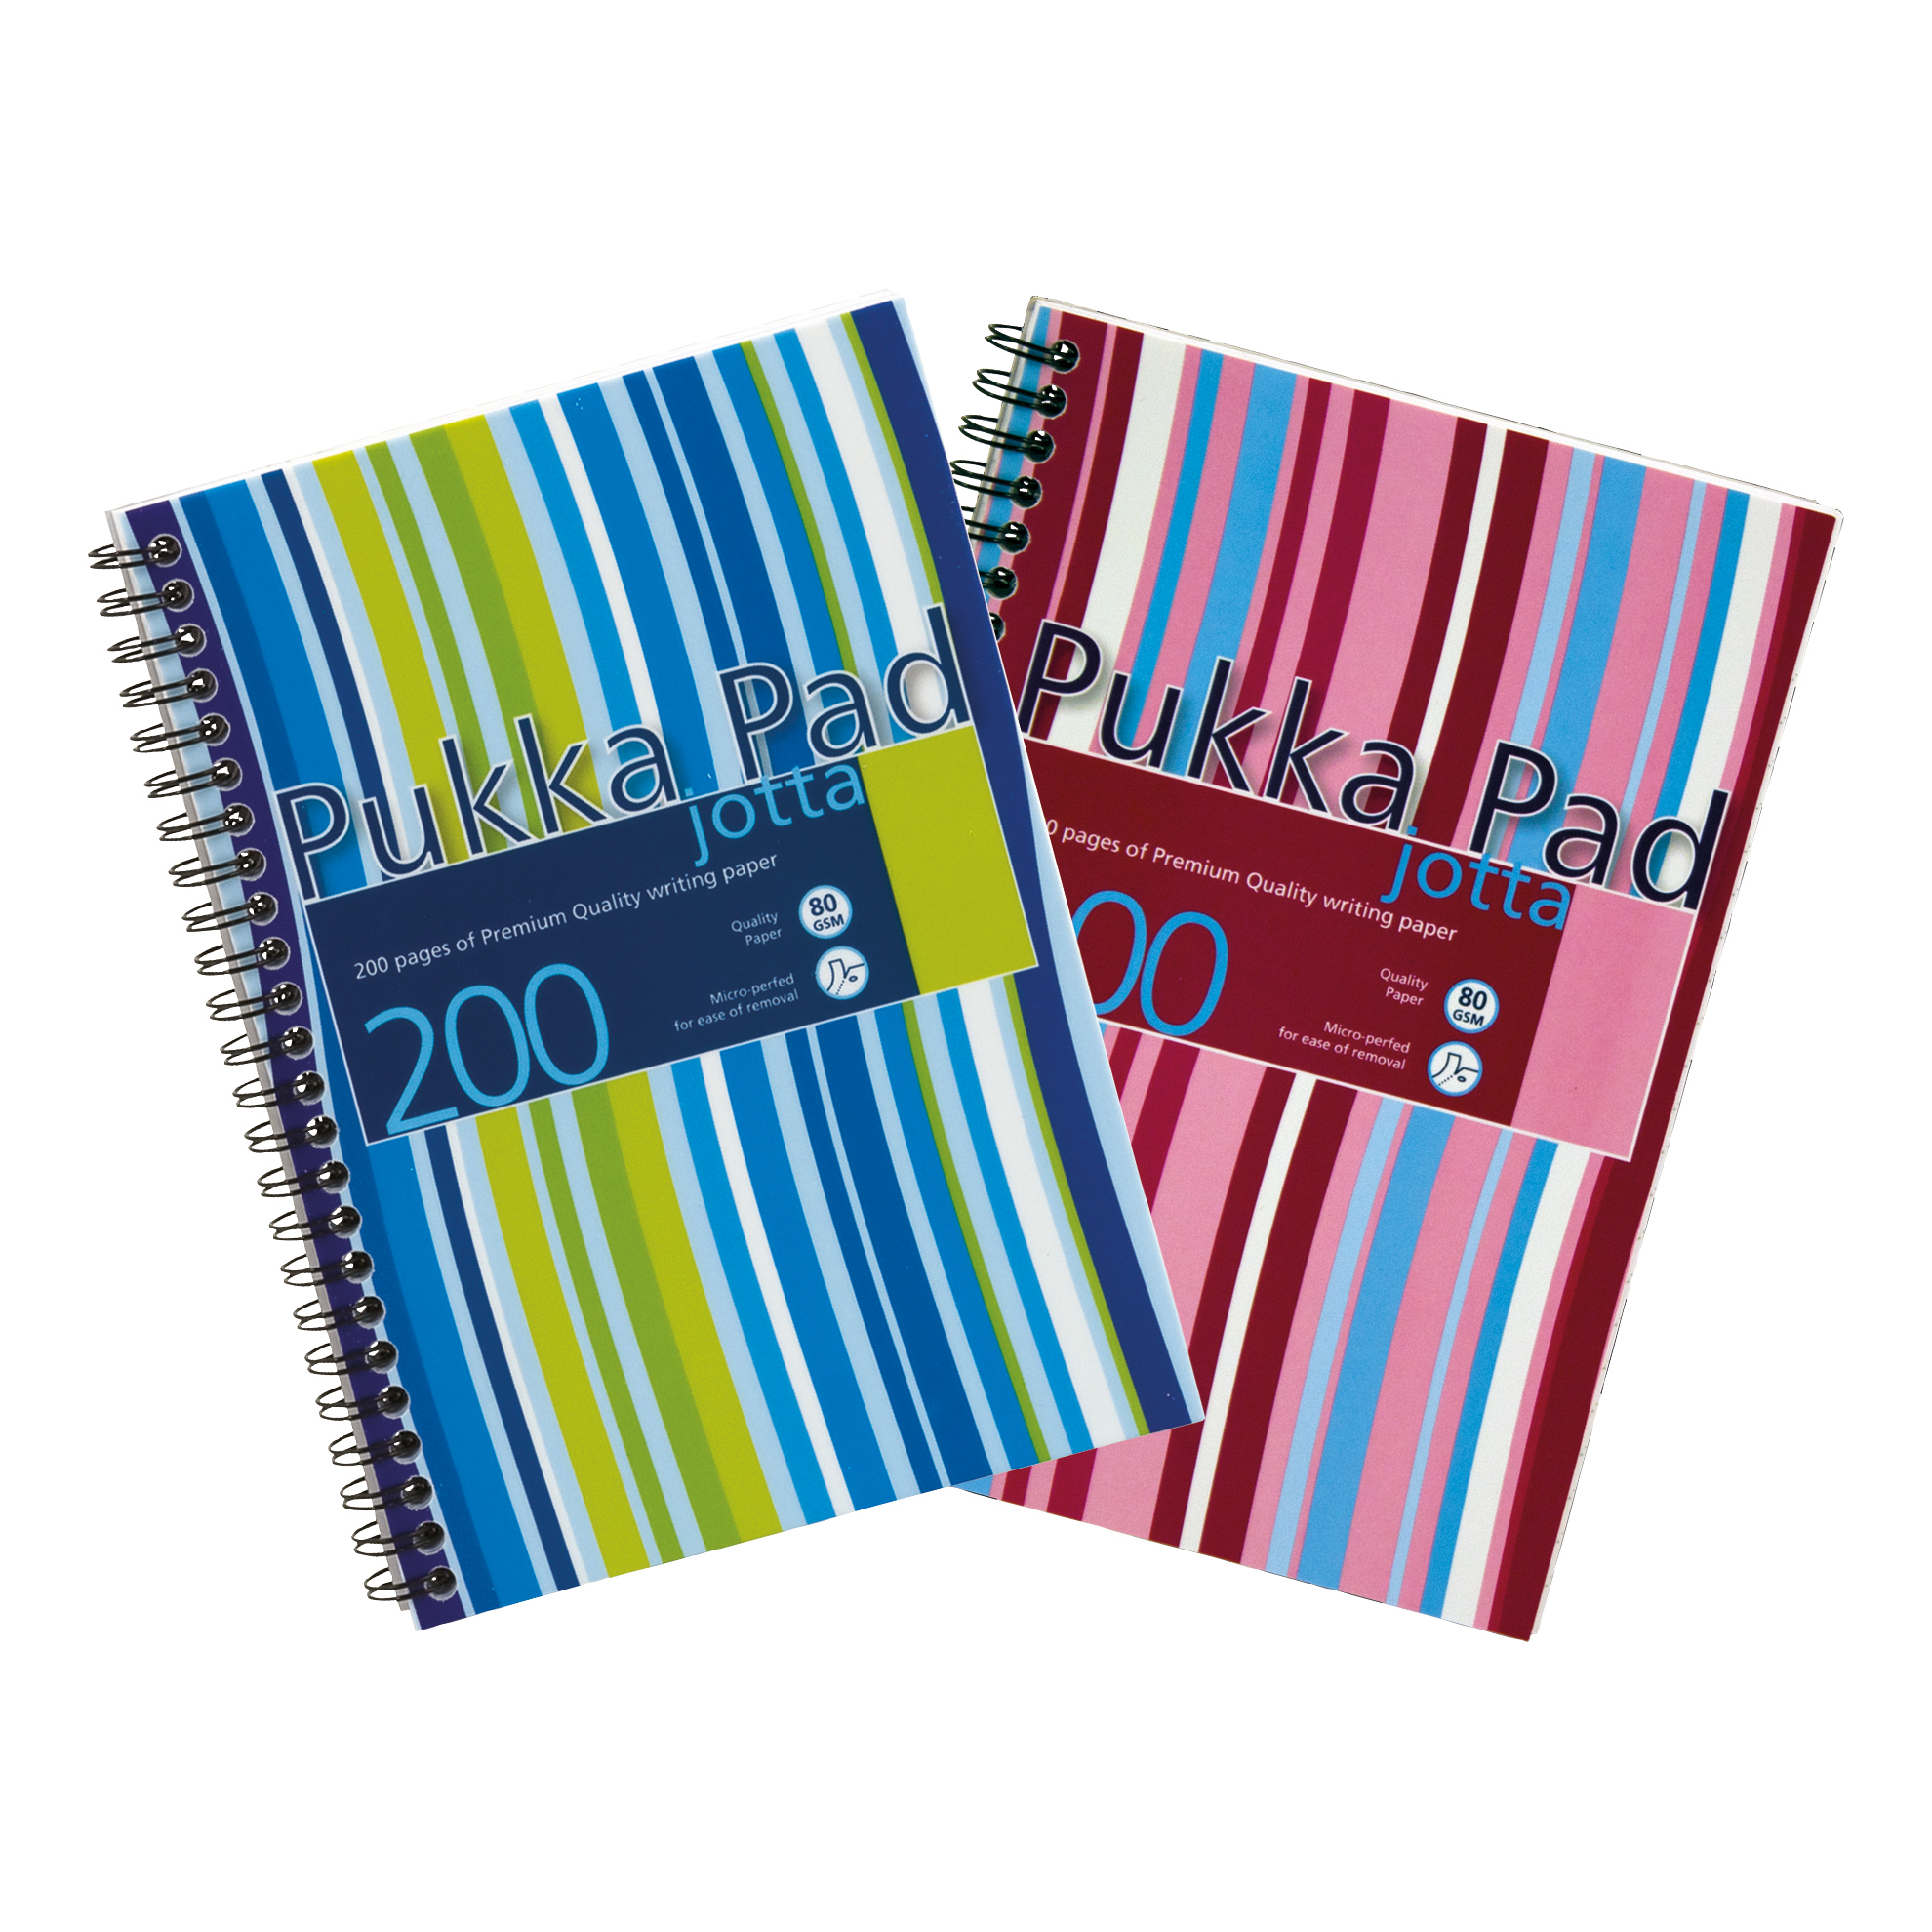 Pukka Pad Jotta Notebook Poly Wirebound 80gsm Ruled Perforated 200pp A5 Assorted Ref JP021 3/4 Packed 3